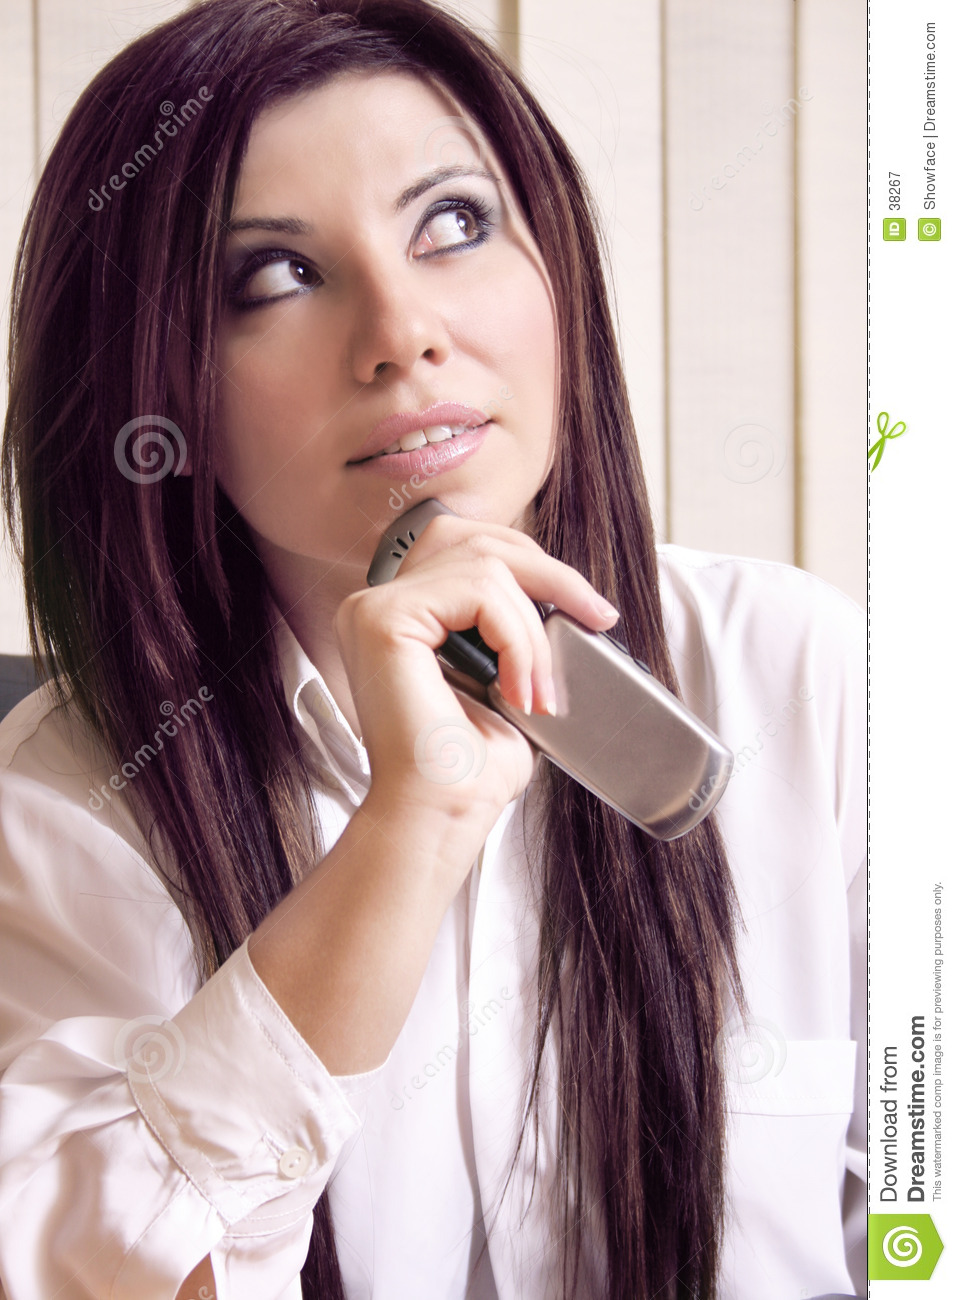 Office worker and cellphone